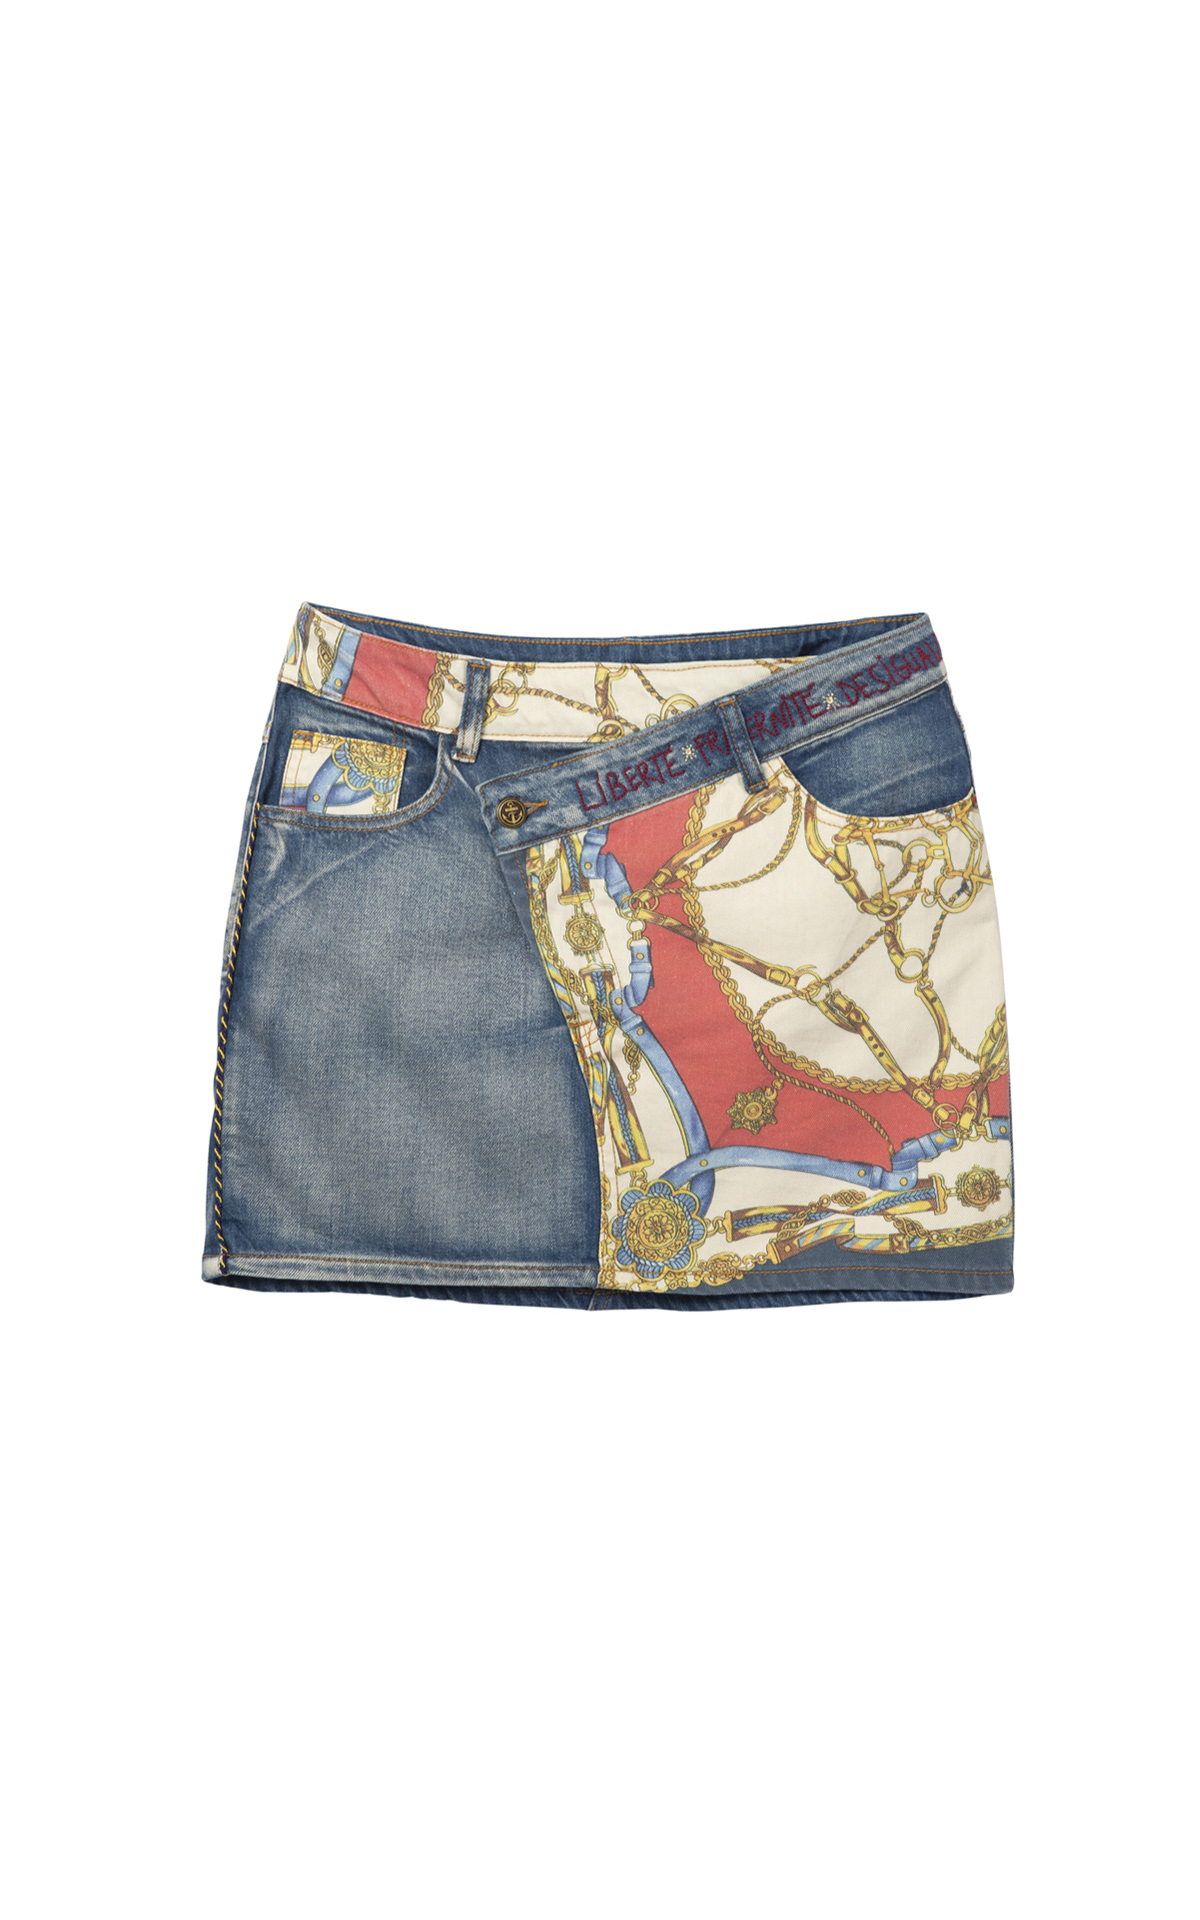 Short denim printed woman's skirt Desigual